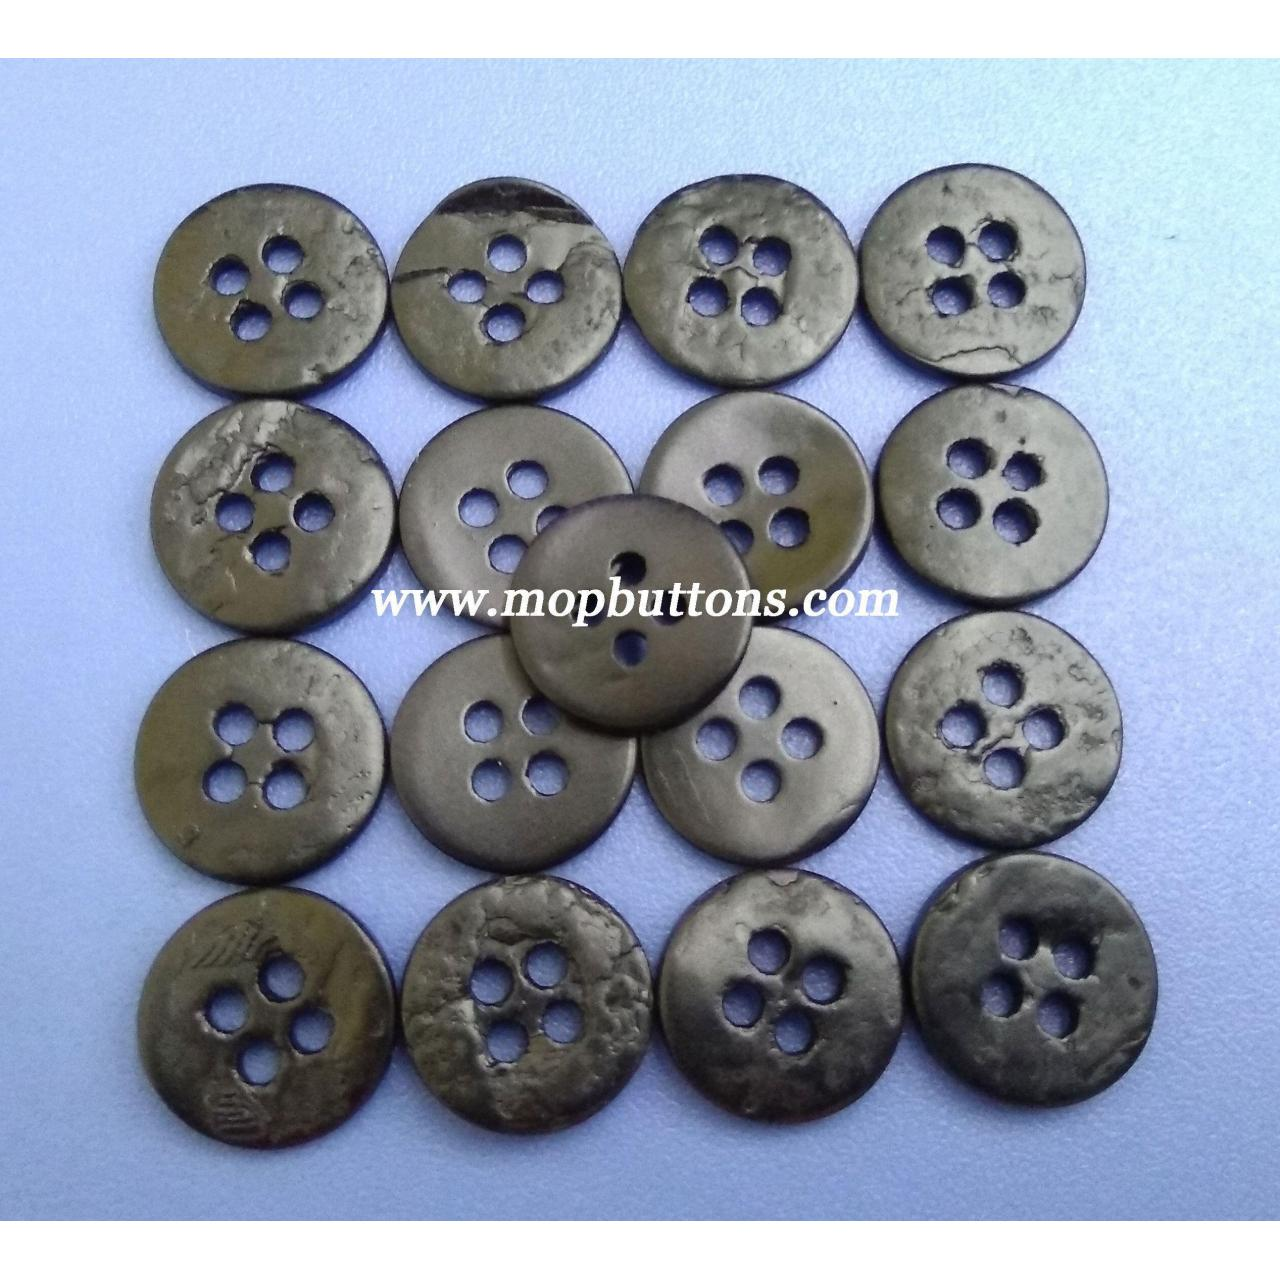 Buy cheap Matt Black Coated 4Holes Japanese Agoya Shell Buttons Garment Accessories from wholesalers